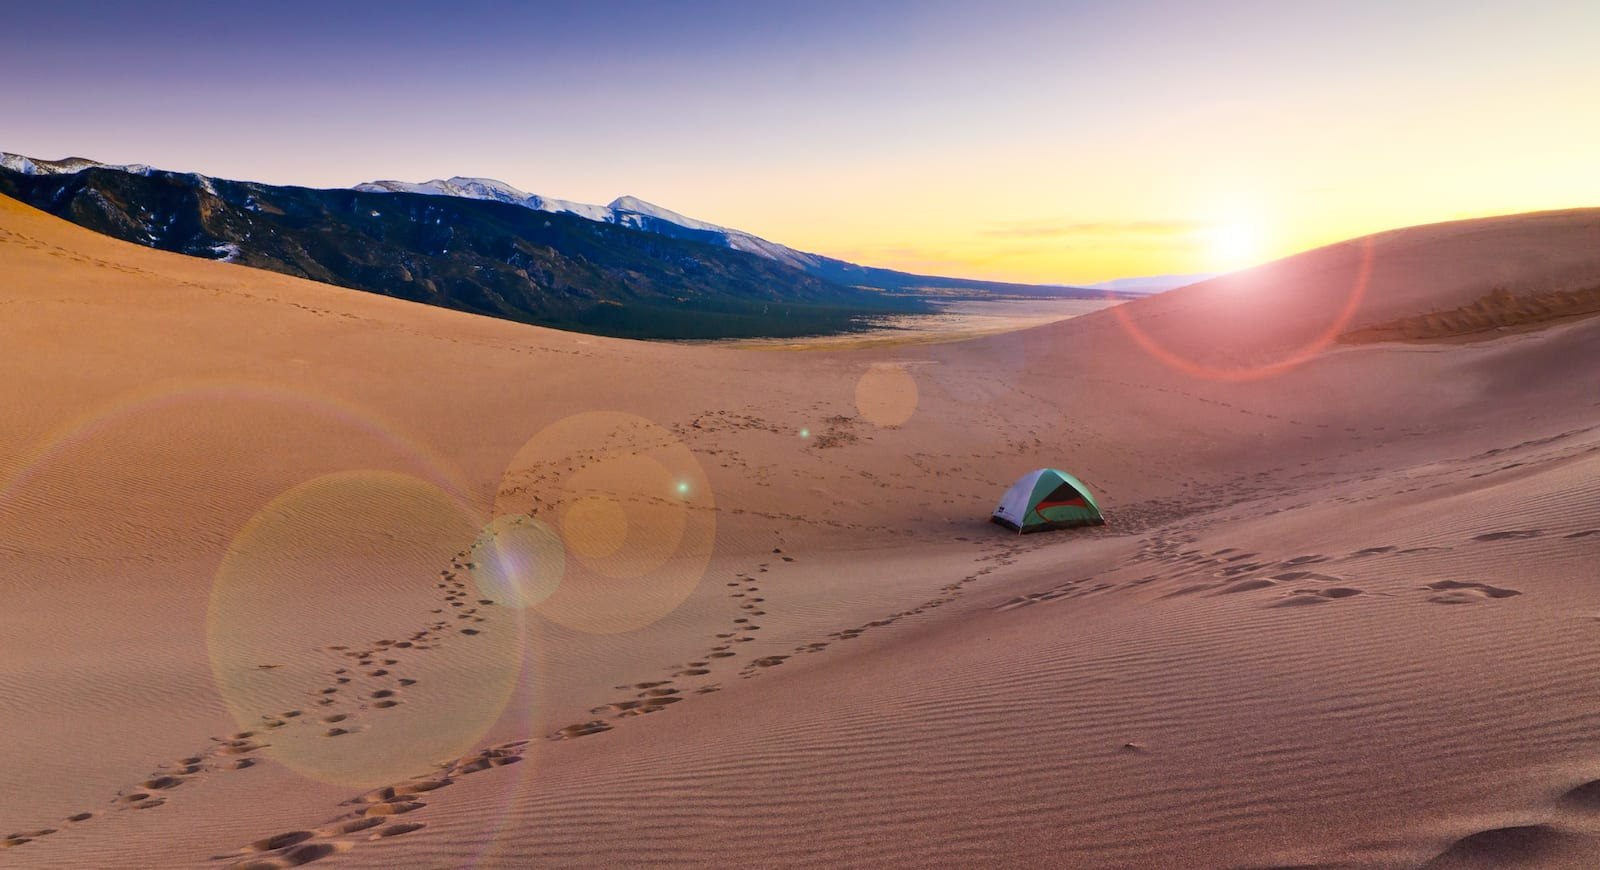 Tent Campsite Star Dune in Great Sand Dunes National Park